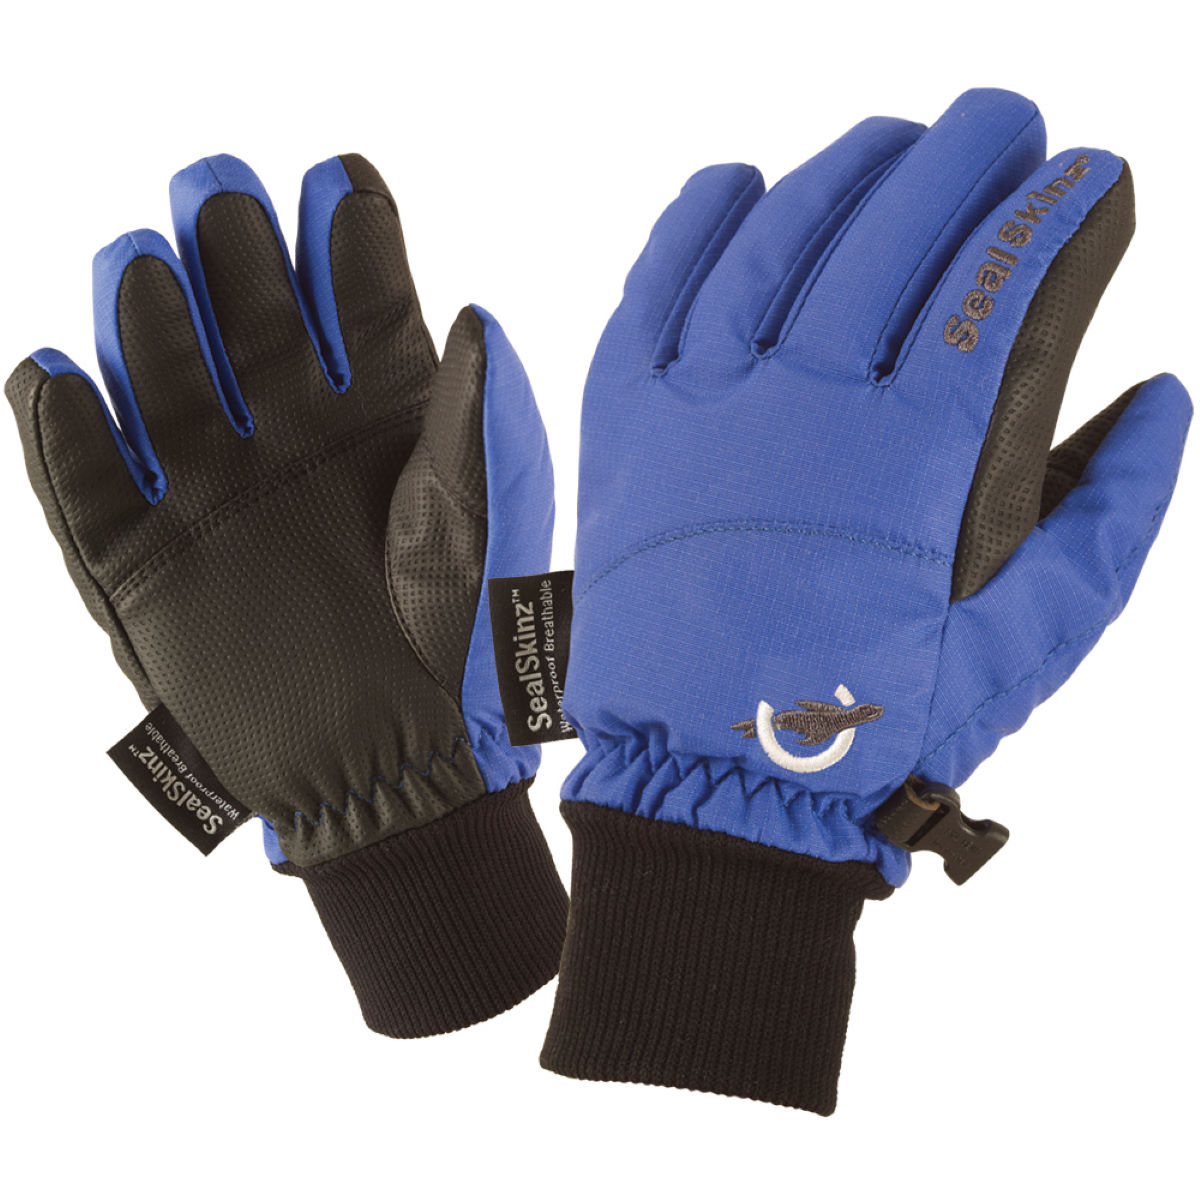 SealSkinz Childrens Glove